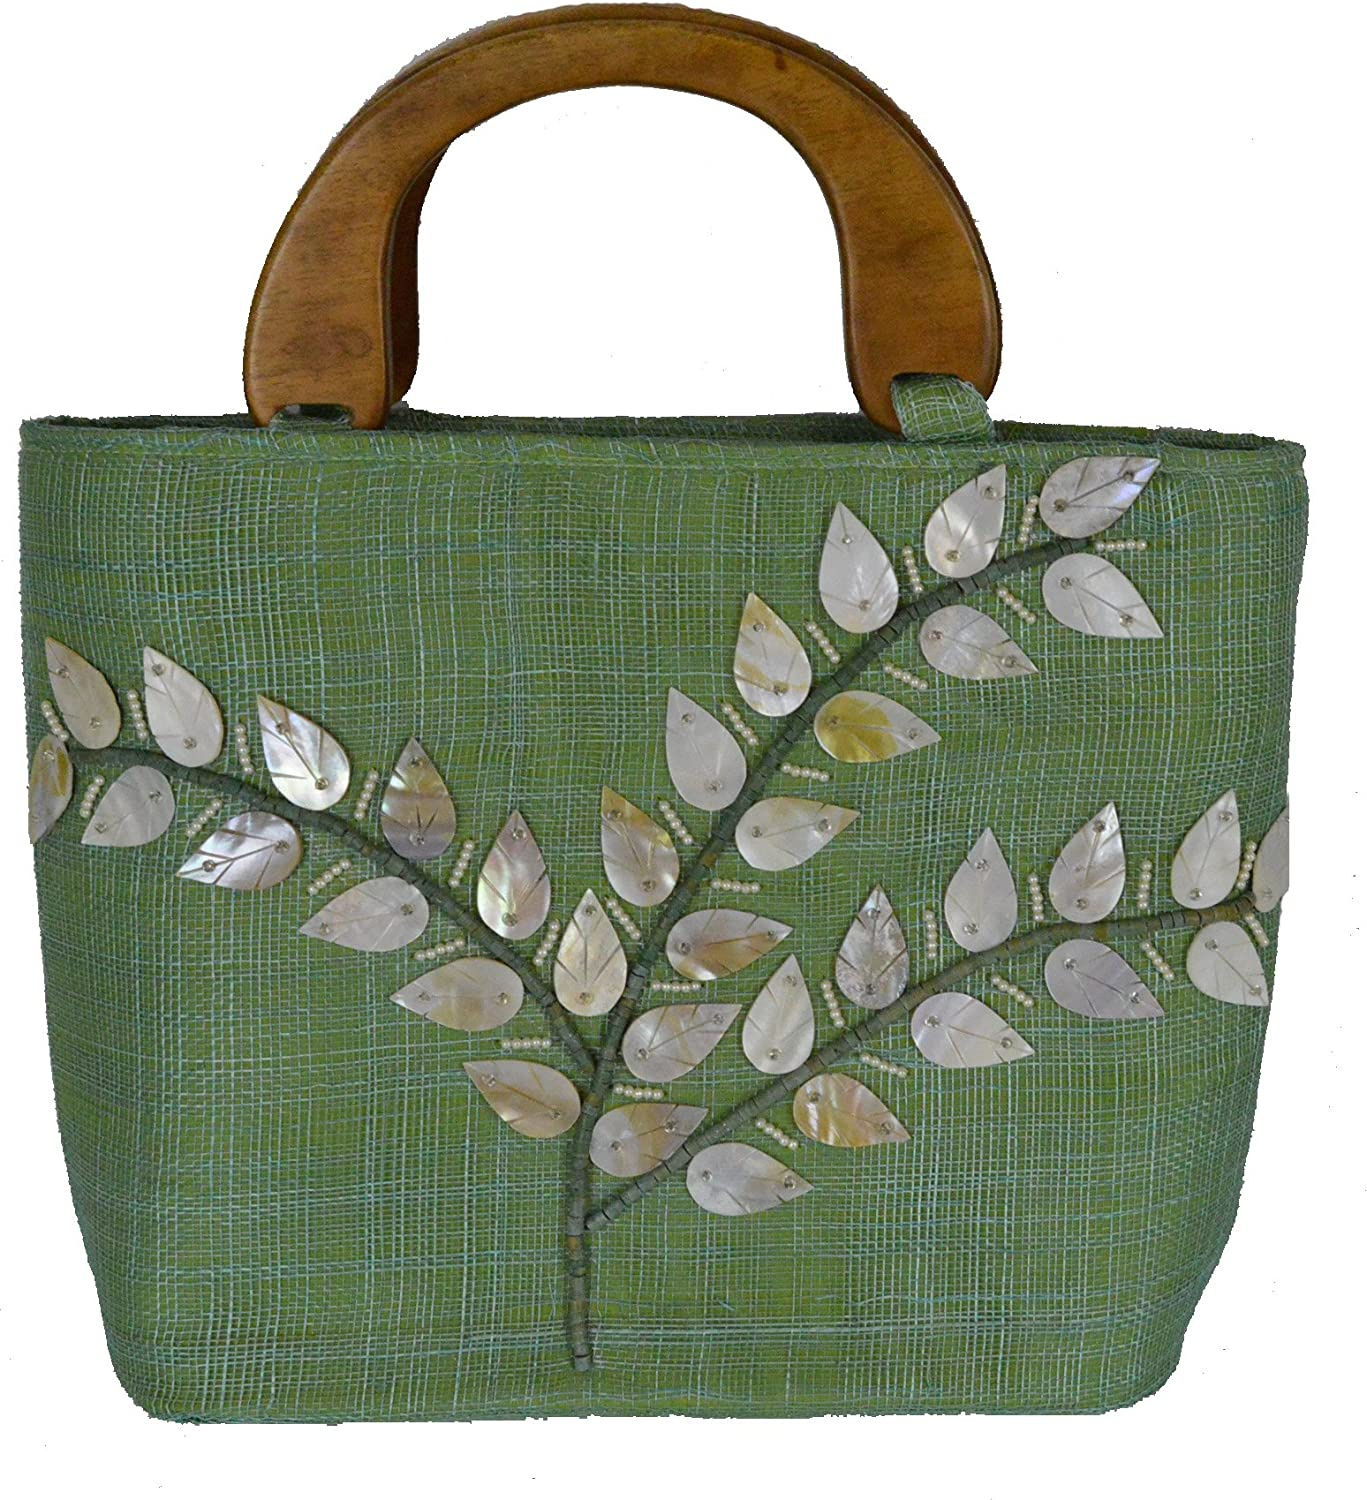 13.5 L Cozumel Lime Green Small ToteStyle Handbag with Seashell and Bead Inlay and Double Wood Handles